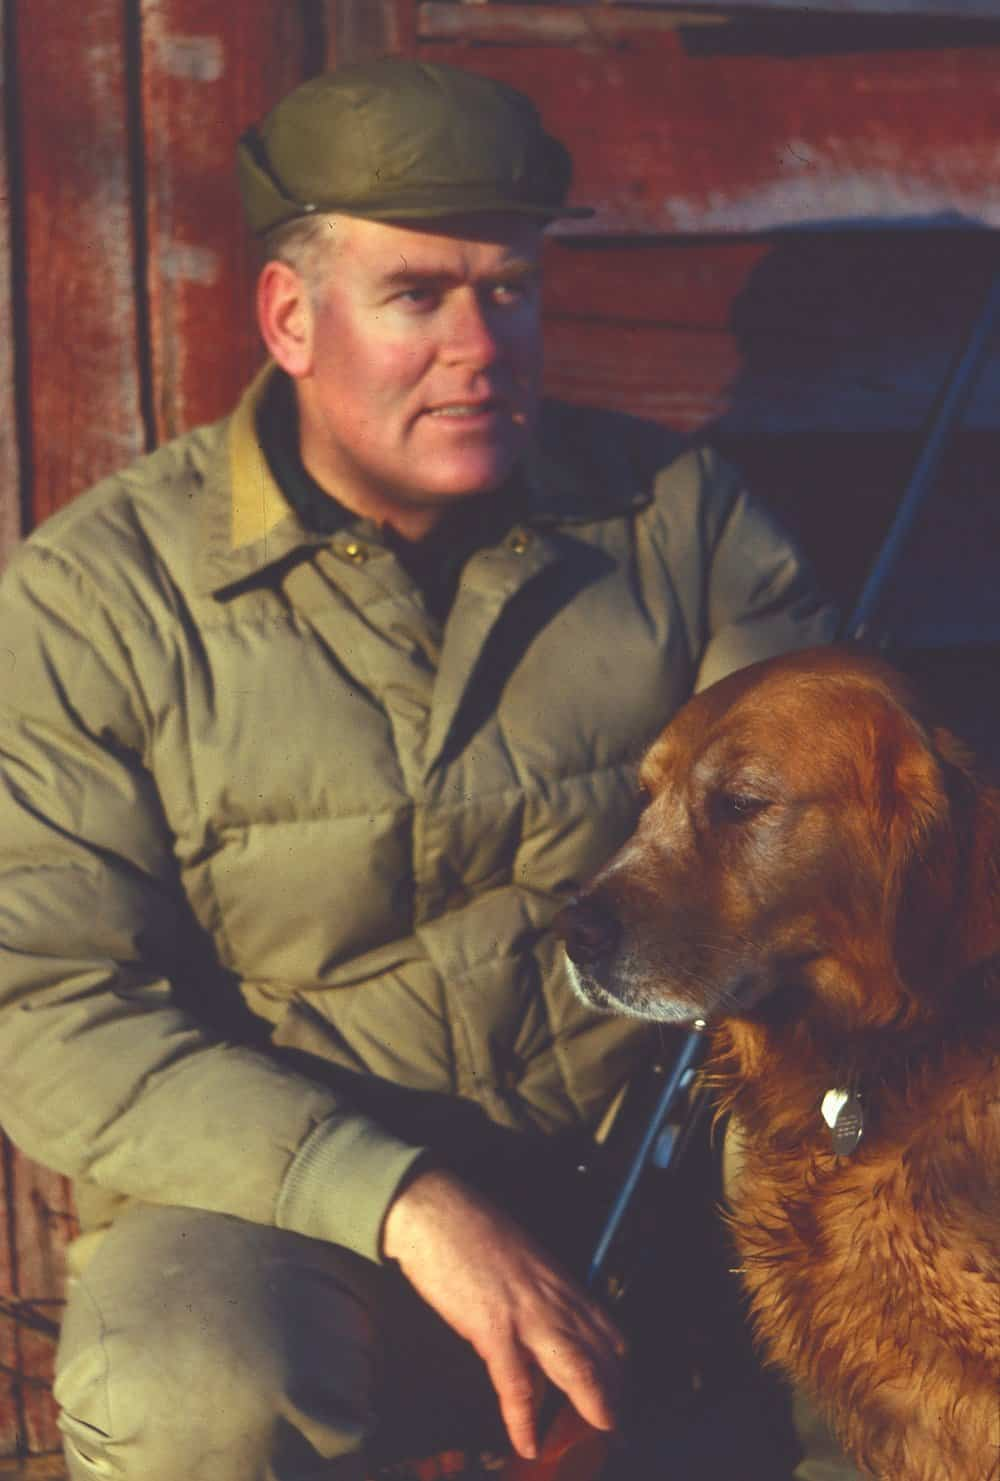 Reiger and Rocky at Remington Farms in Kent County, Md. circa 1978.